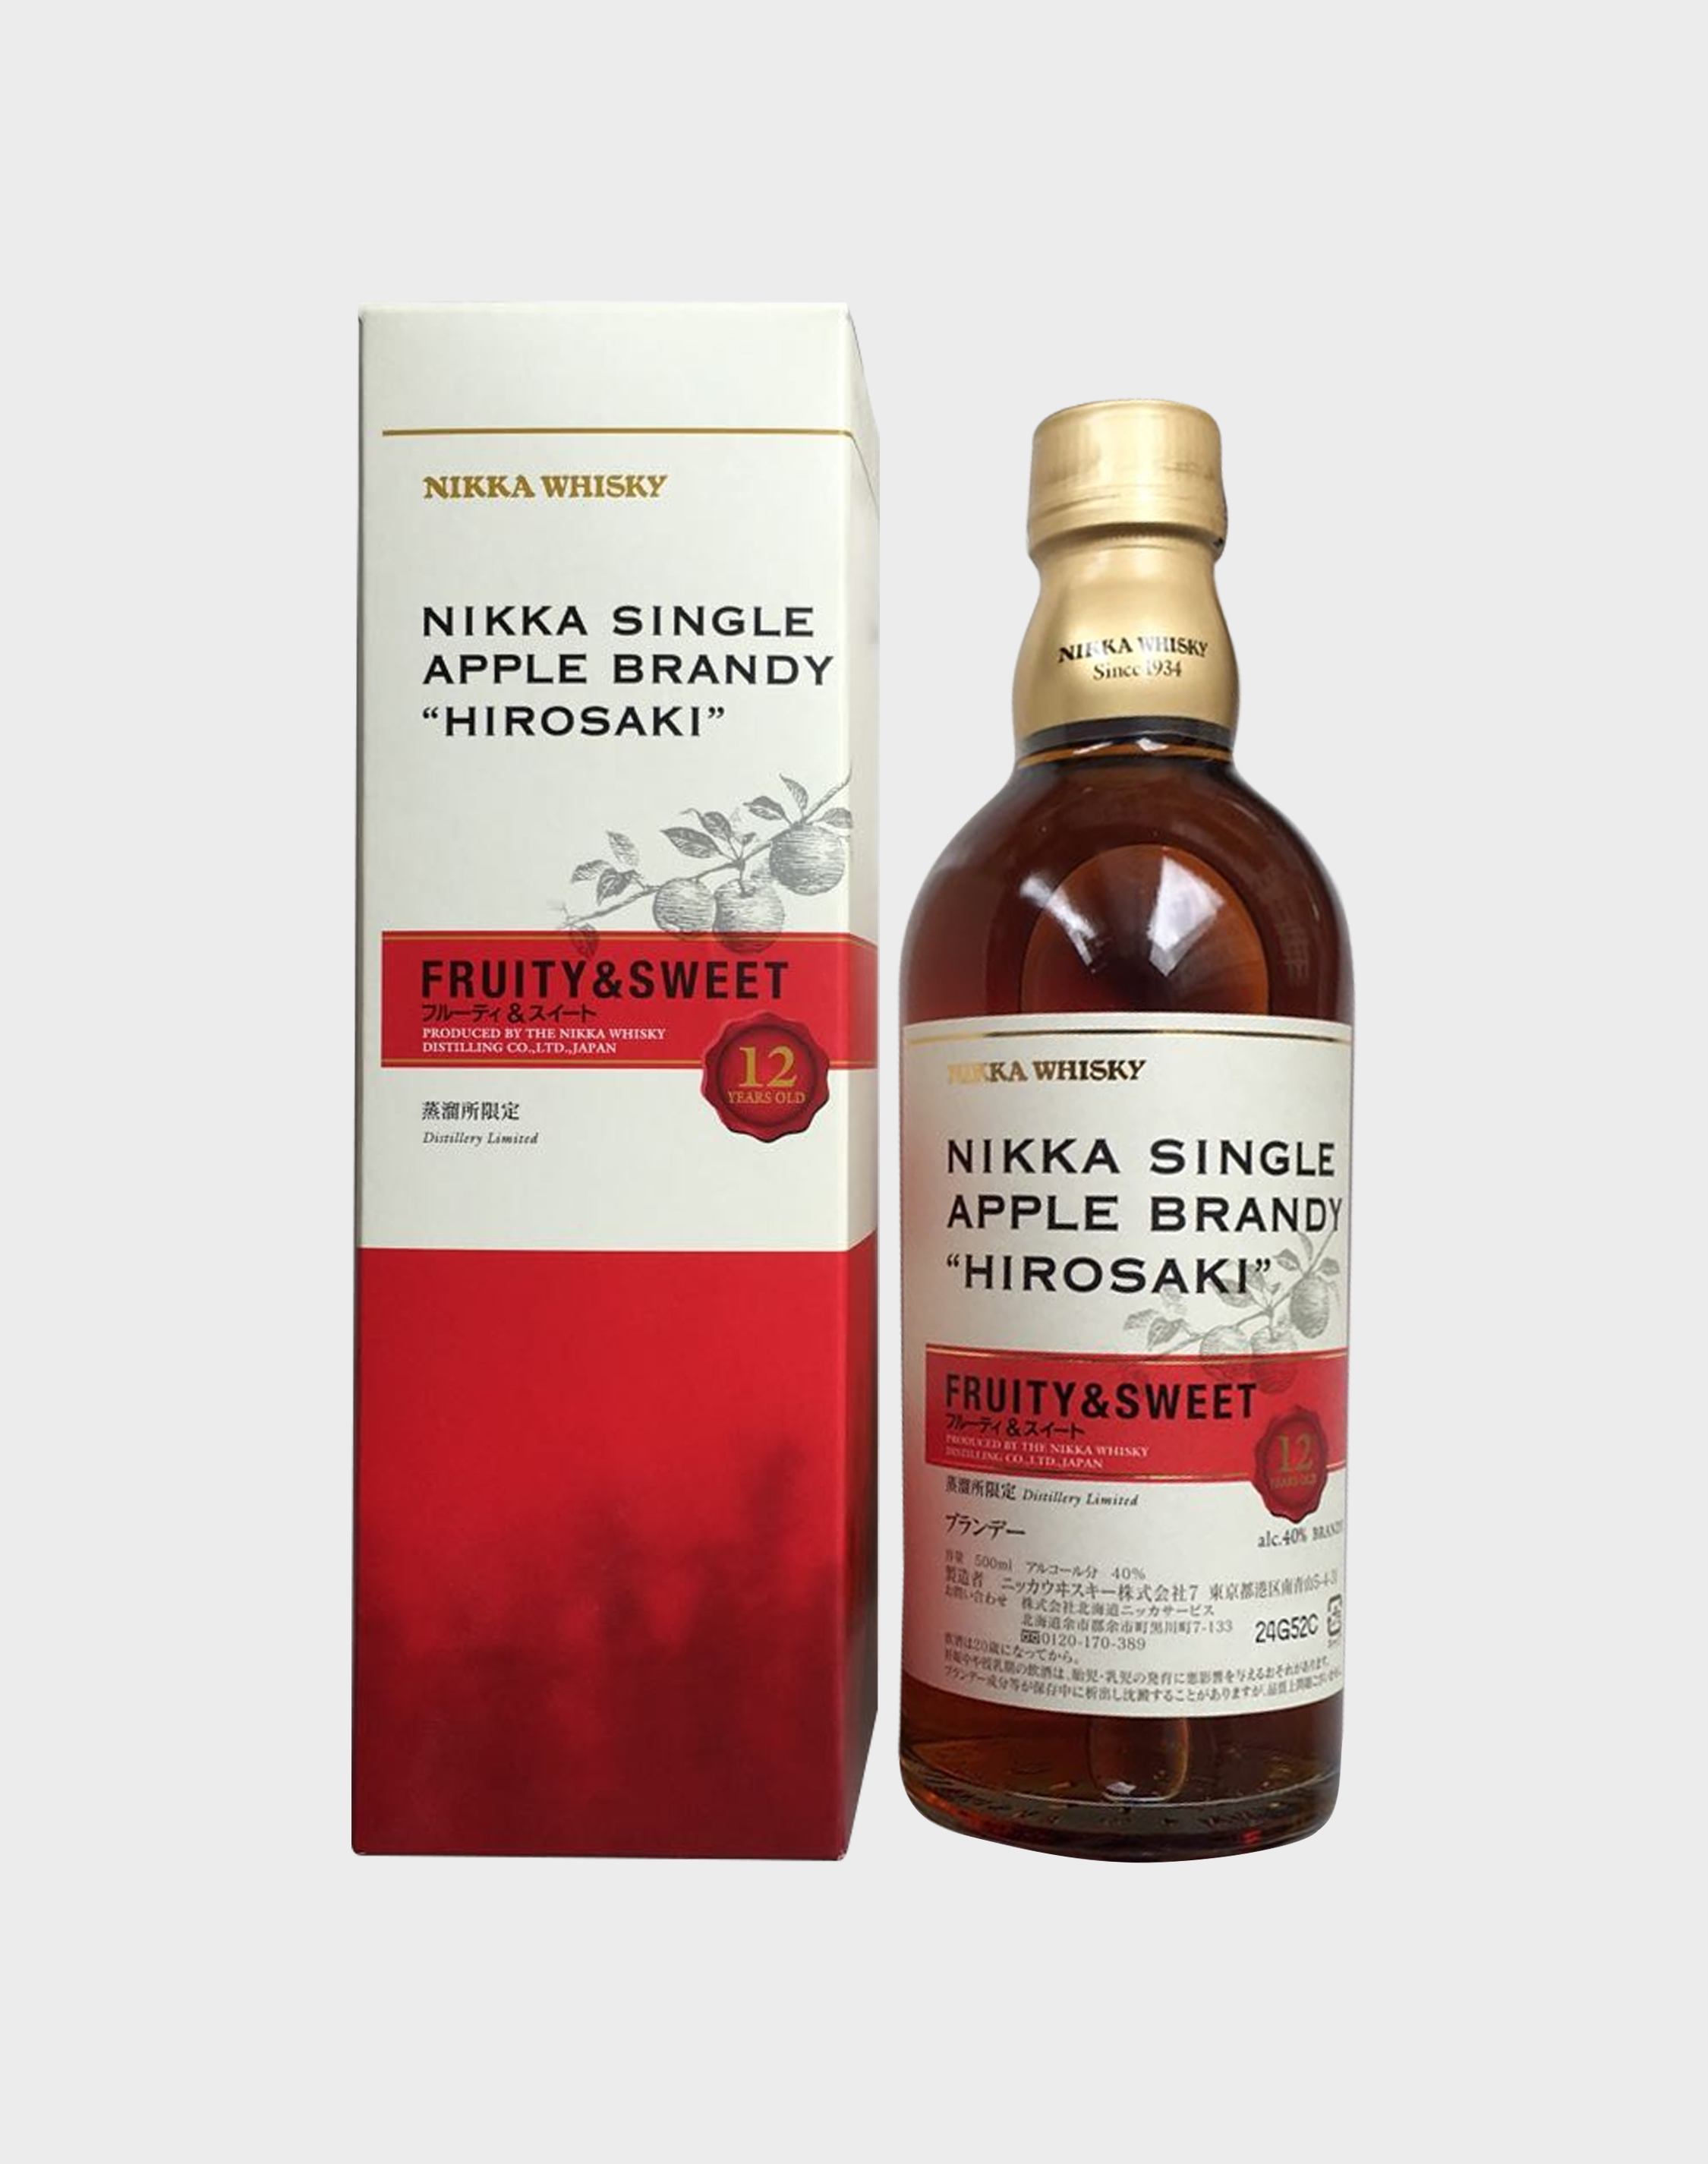 Apple Brandy Hirosaki 12 Year Old Fruity & Sweet